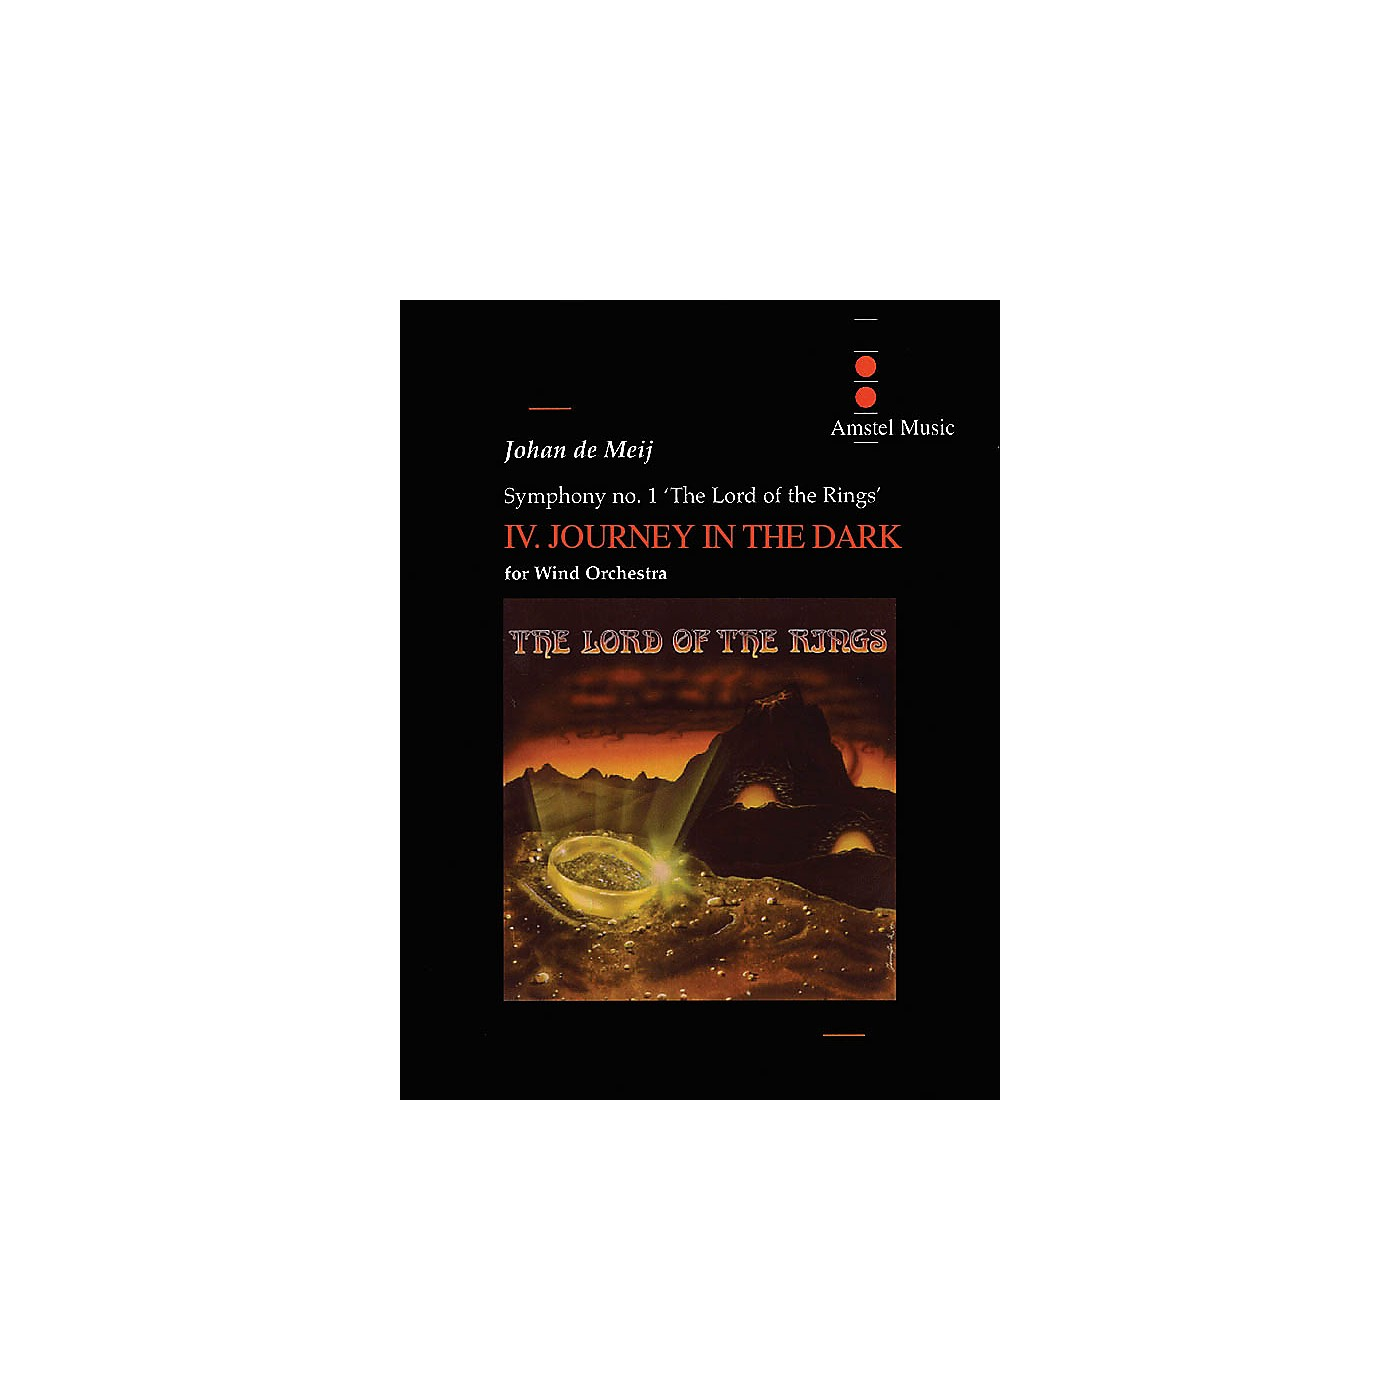 Amstel Music Lord of the Rings, The (Symphony No. 1) - Journey in the Dark Concert Band Level 5-6 by Johan de Meij thumbnail